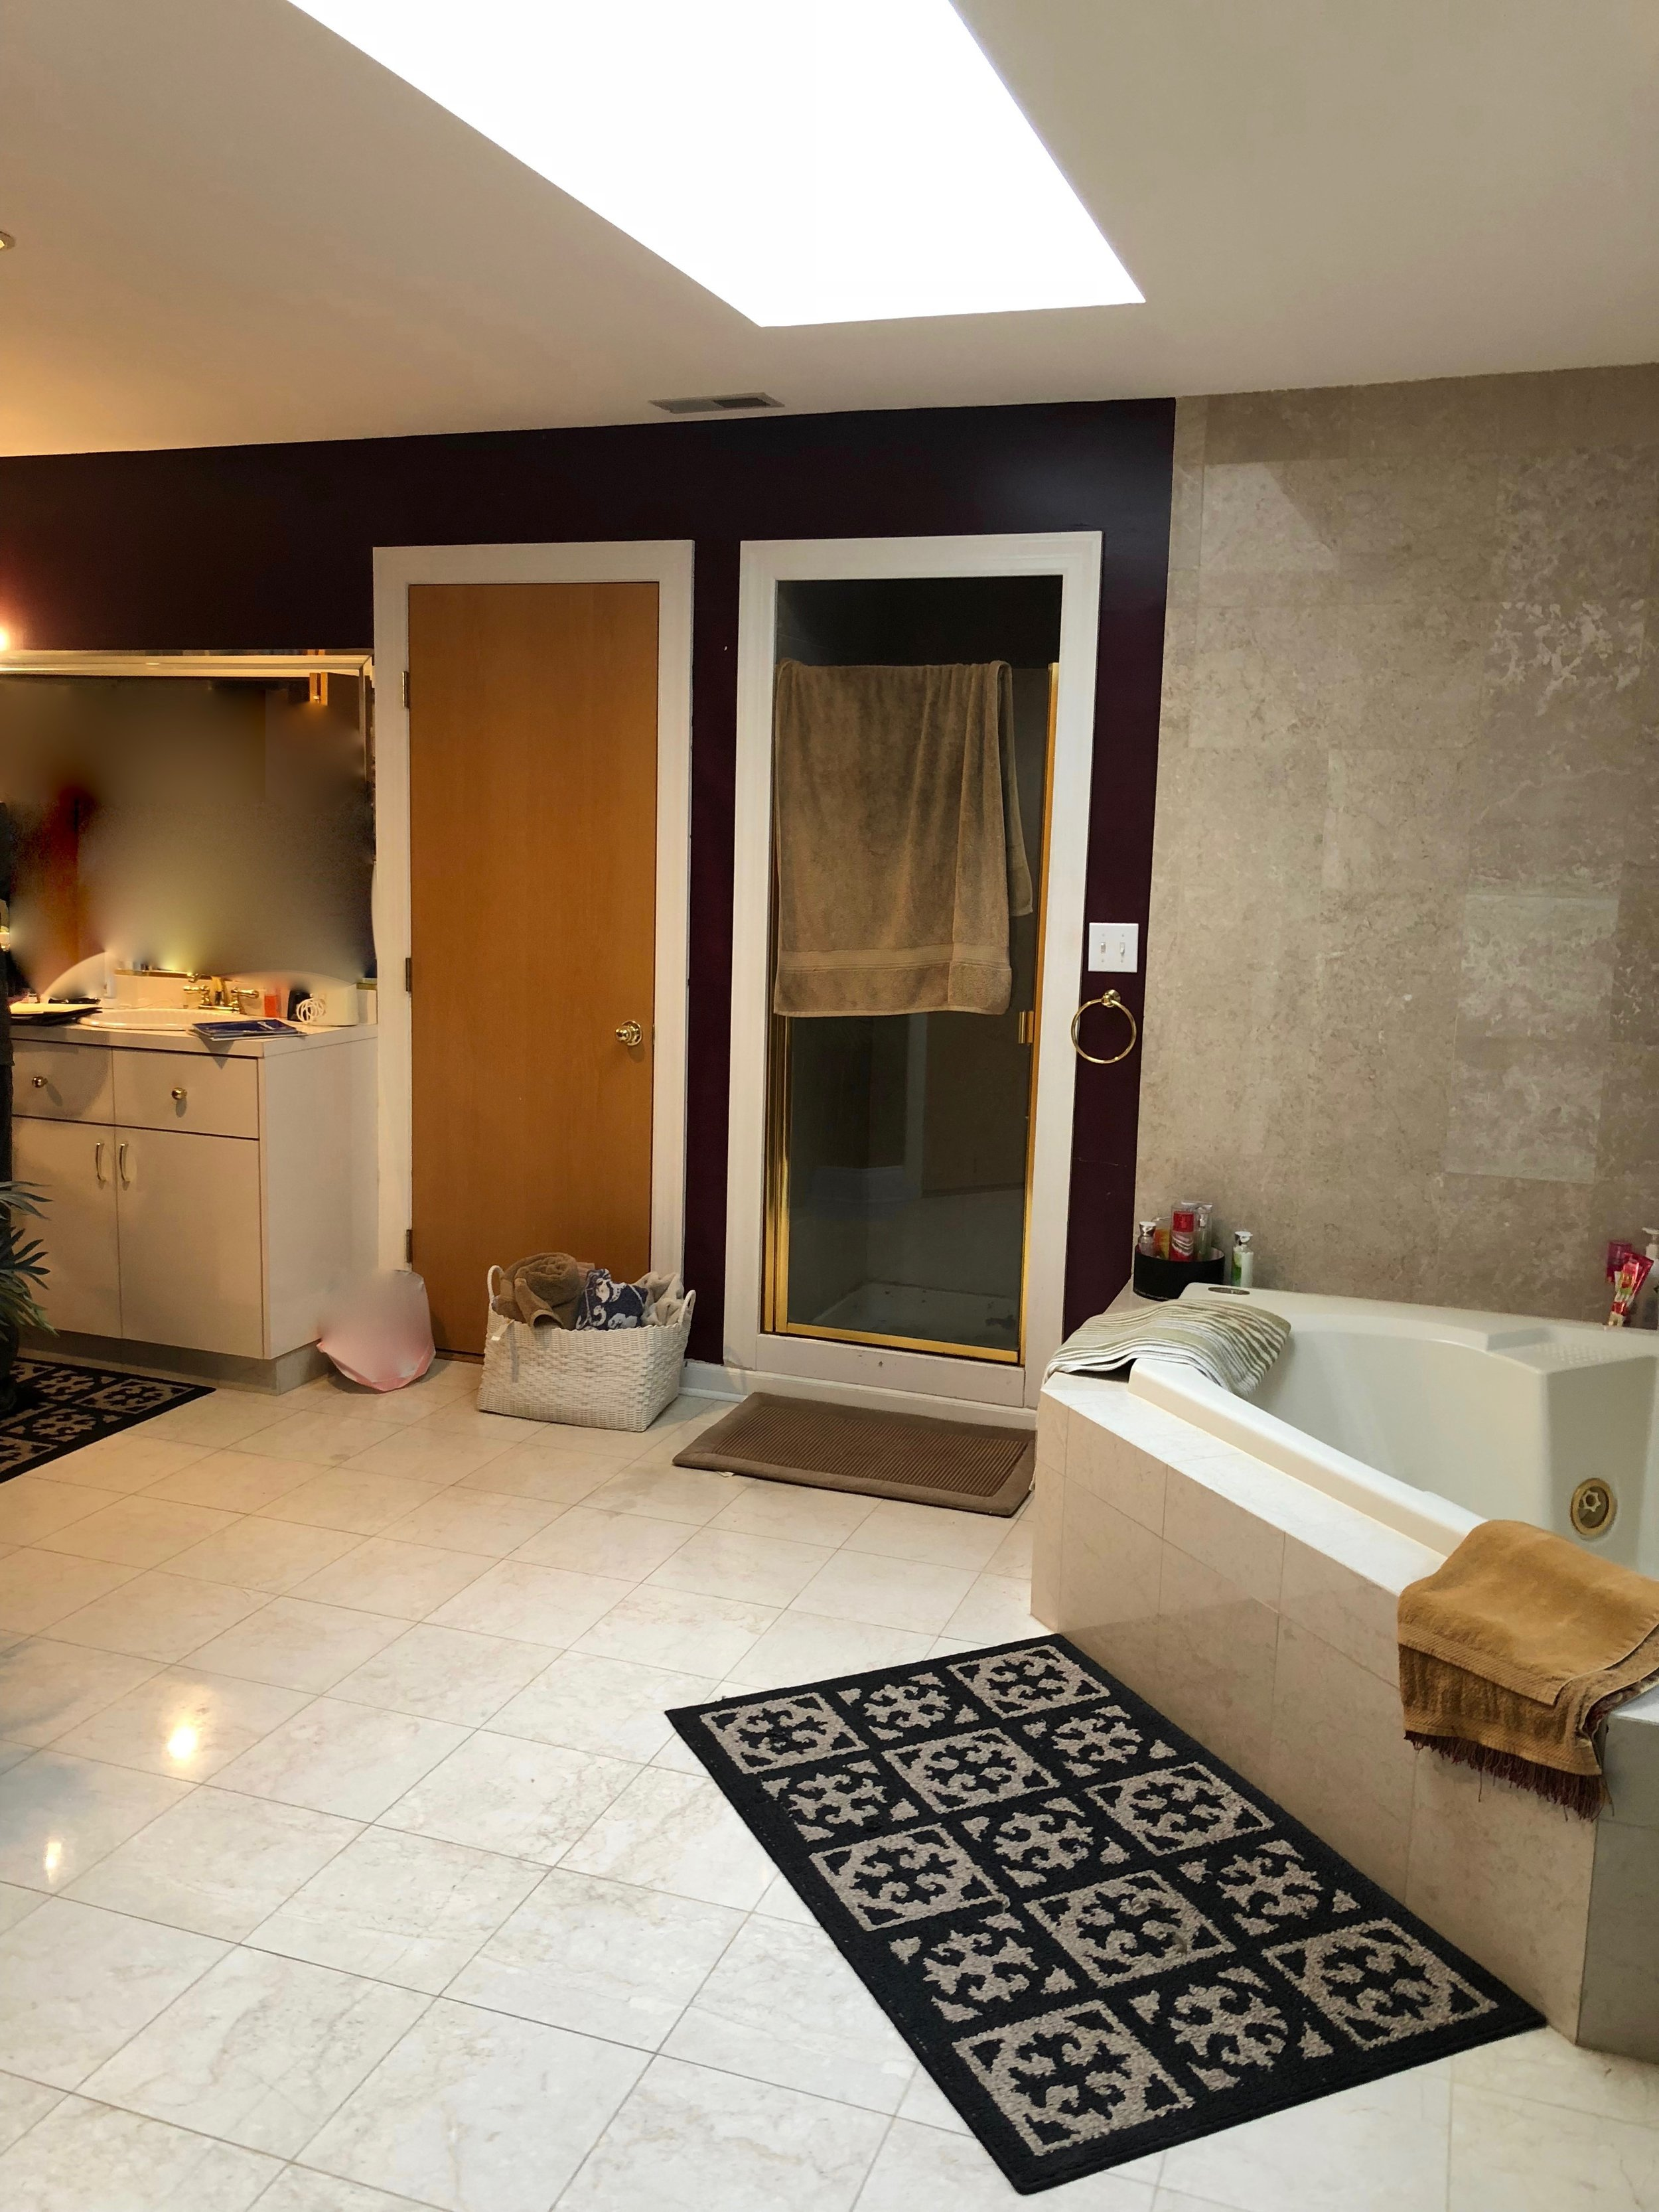 Bathroom Remodel Before Photo with Corner Tub and Small Fiberglass Enclosure Shower in this Oversized Room- Geneva IL